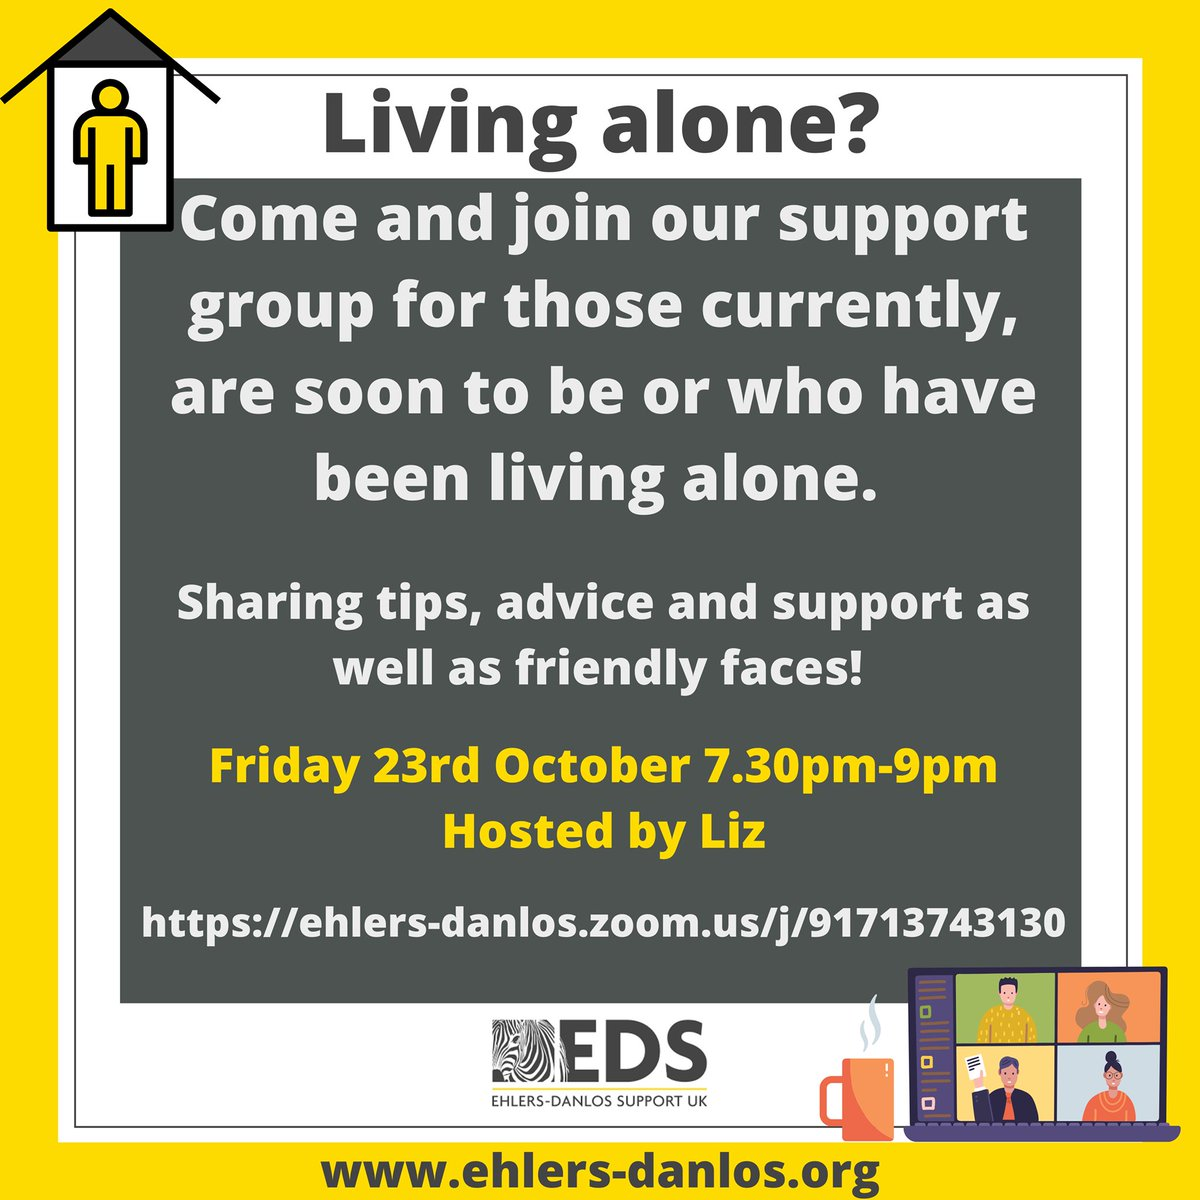 Our local online support groups and meet-ups are a great place to chat with and meet others. The Living Alone support group will meet today Friday, October 23, 7:30pm – 9:00pm on Zoom. Zoom Link: https://t.co/vPtgycqpIM  #EhlersDanlosSyndrome #EhlersDanlos #Hypermobility https://t.co/cT8lup95HA